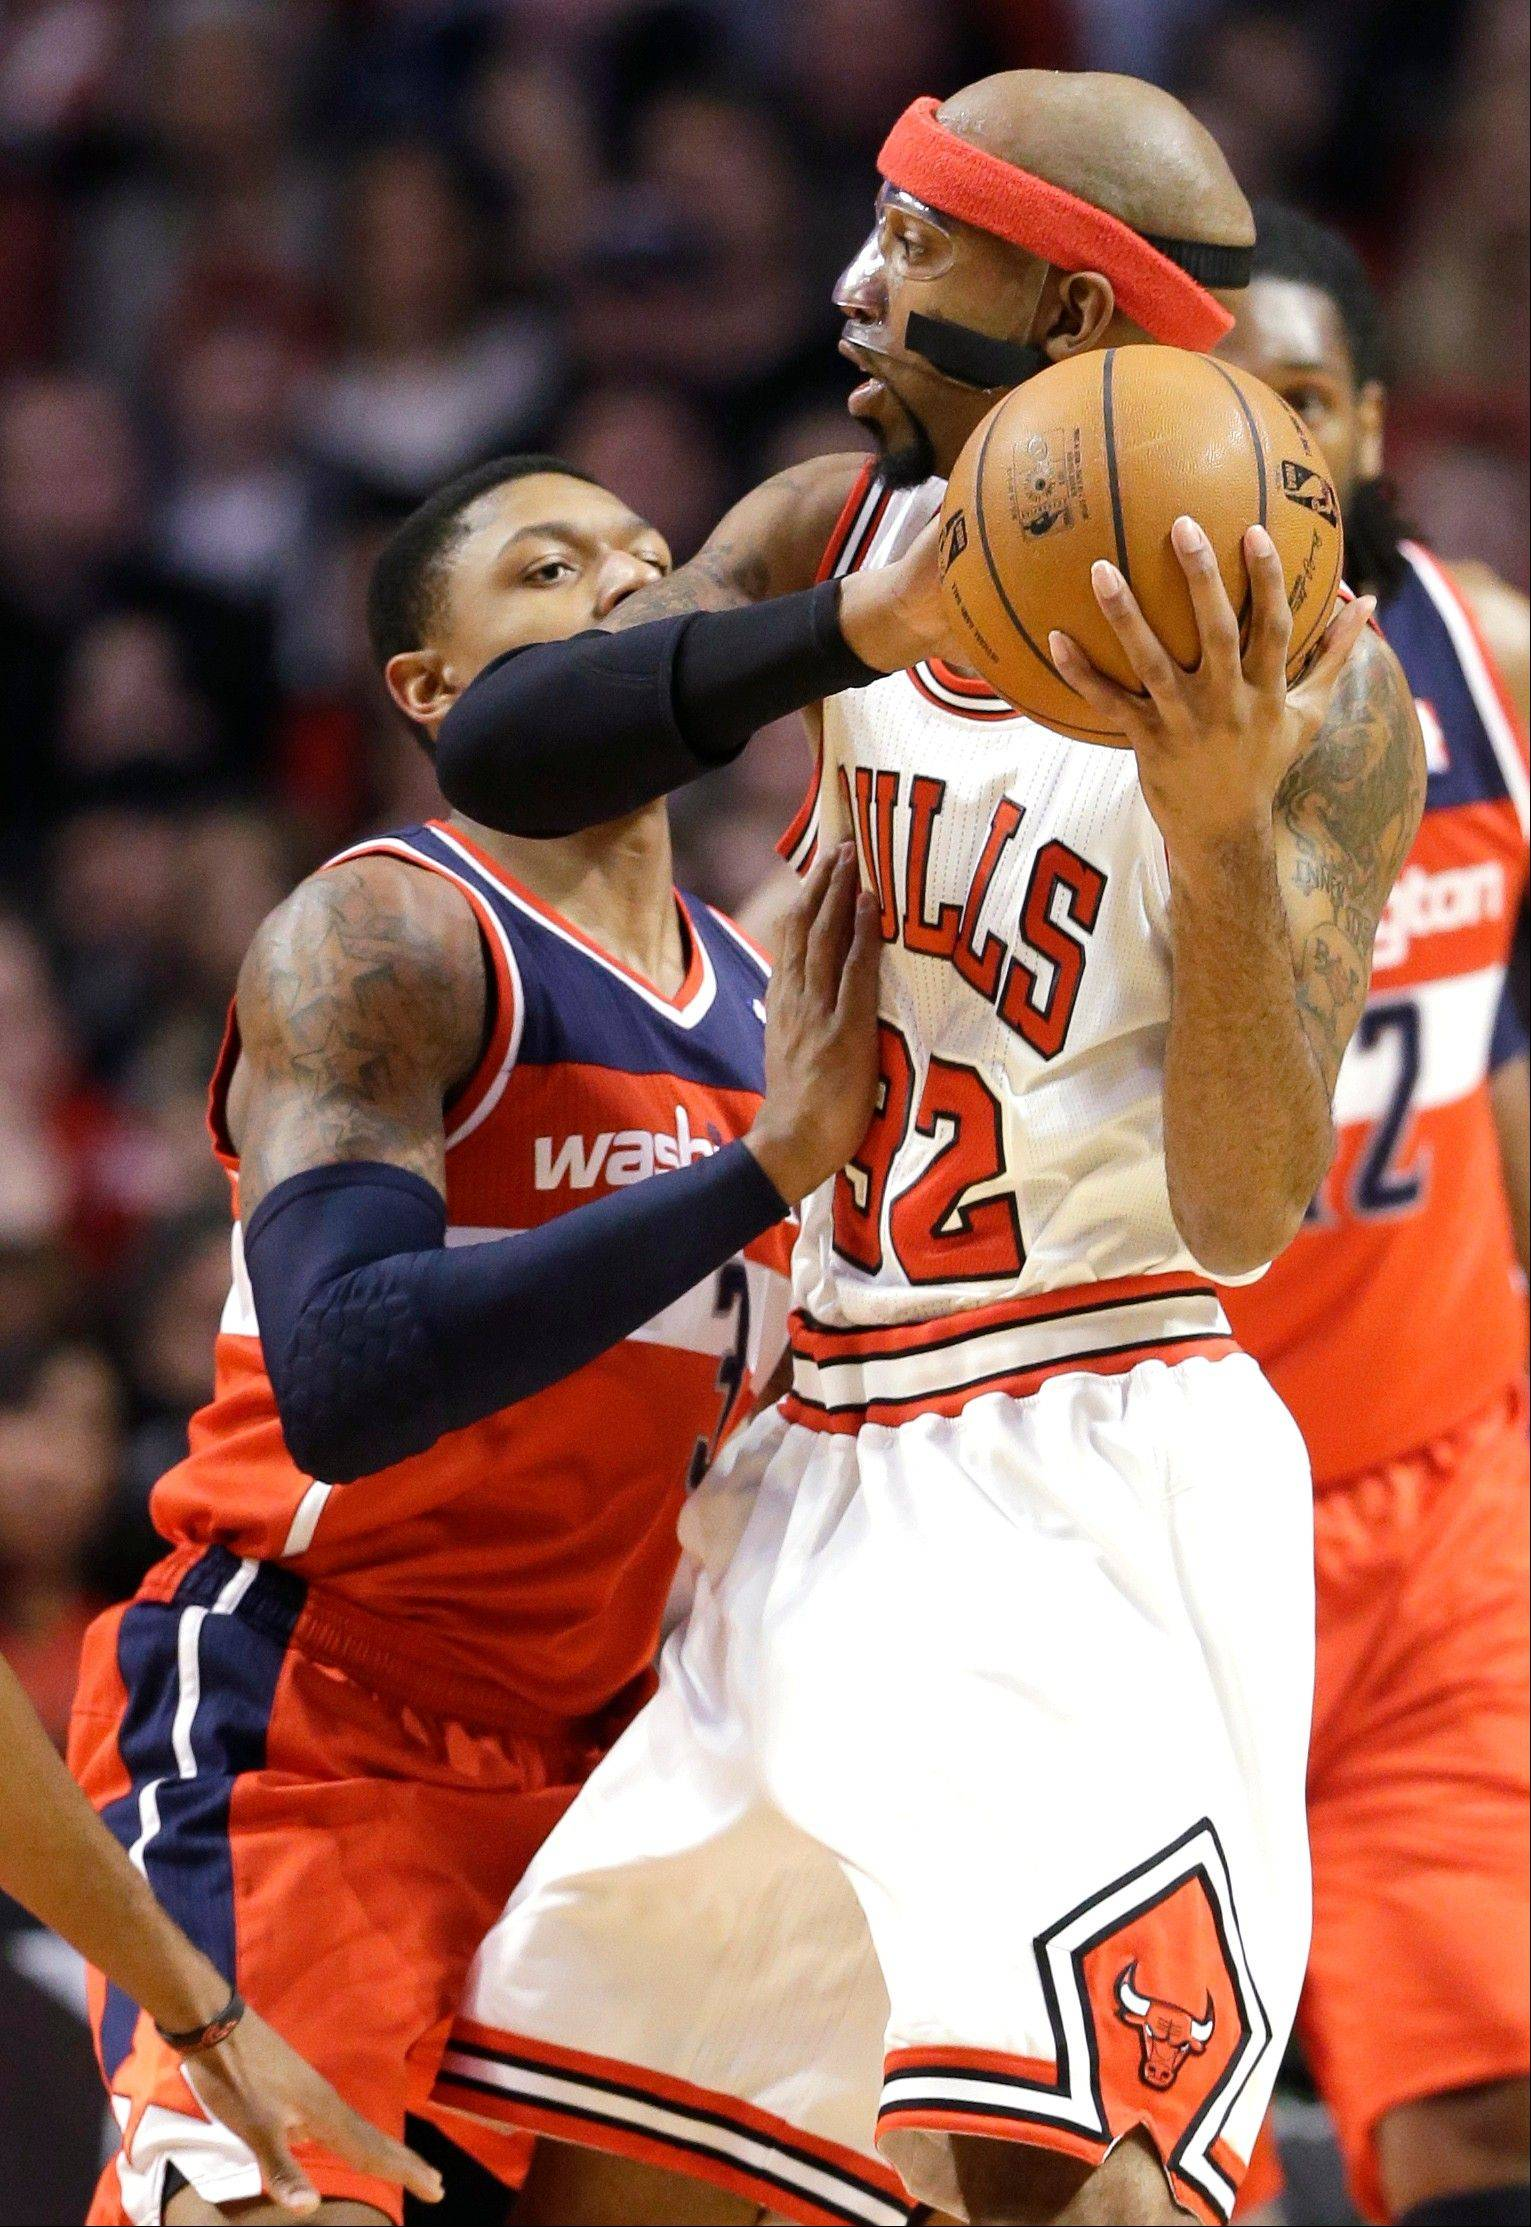 Bulls guard Richard Hamilton returned to the lineup Saturday night, finishing with 9 points in the victory over the Wizards.